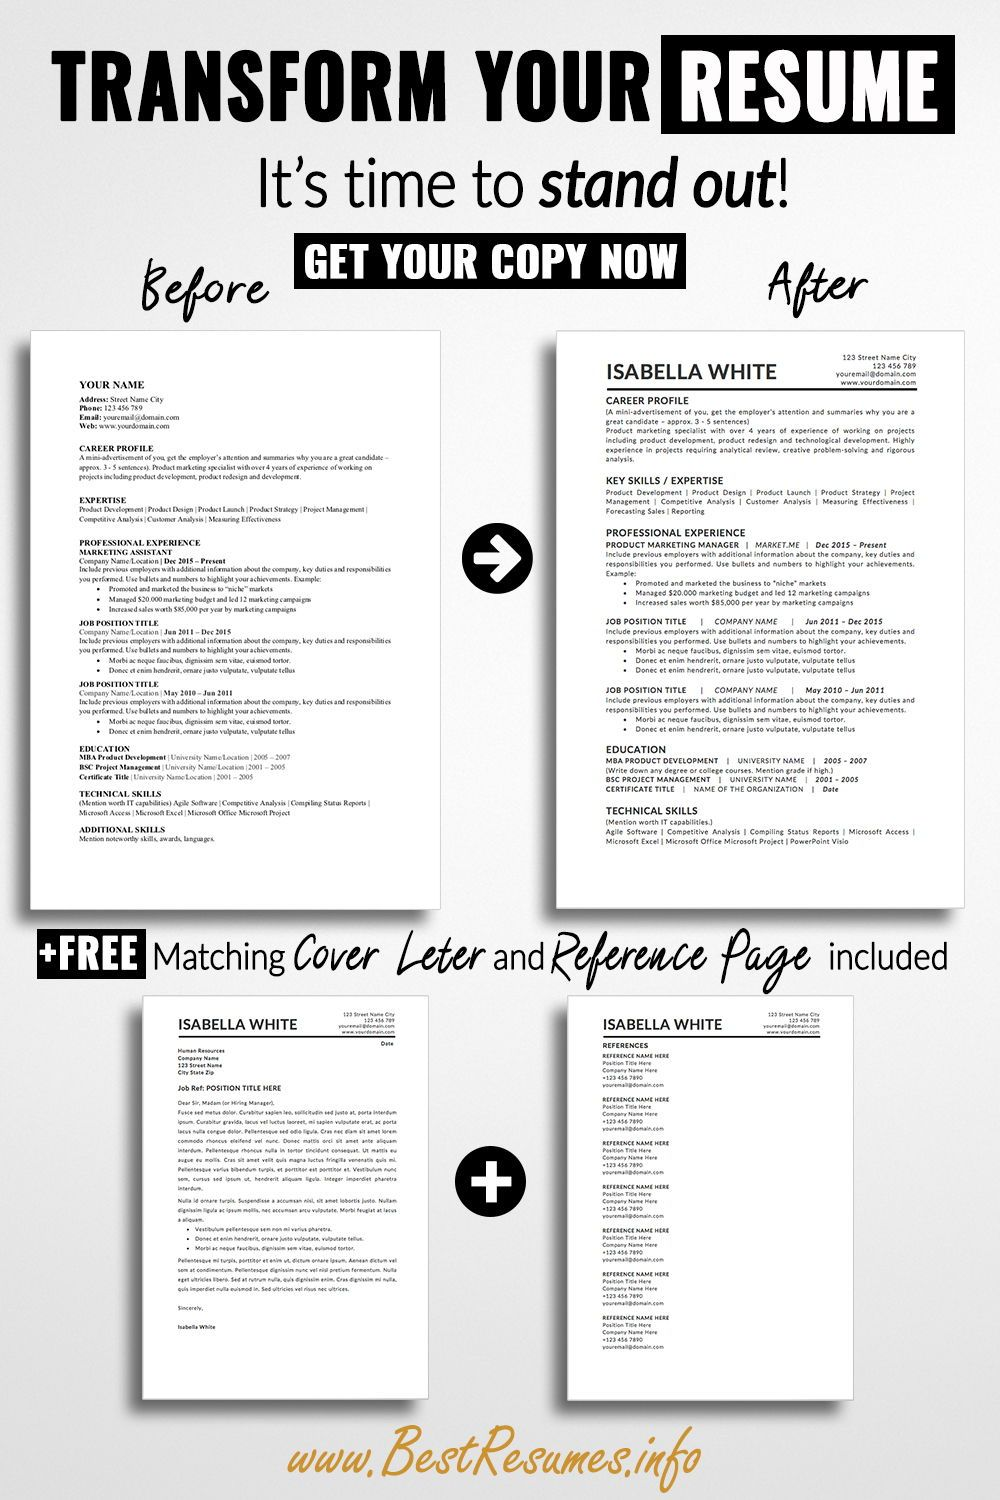 Simple Resume Template Isabella White BestResumes.info